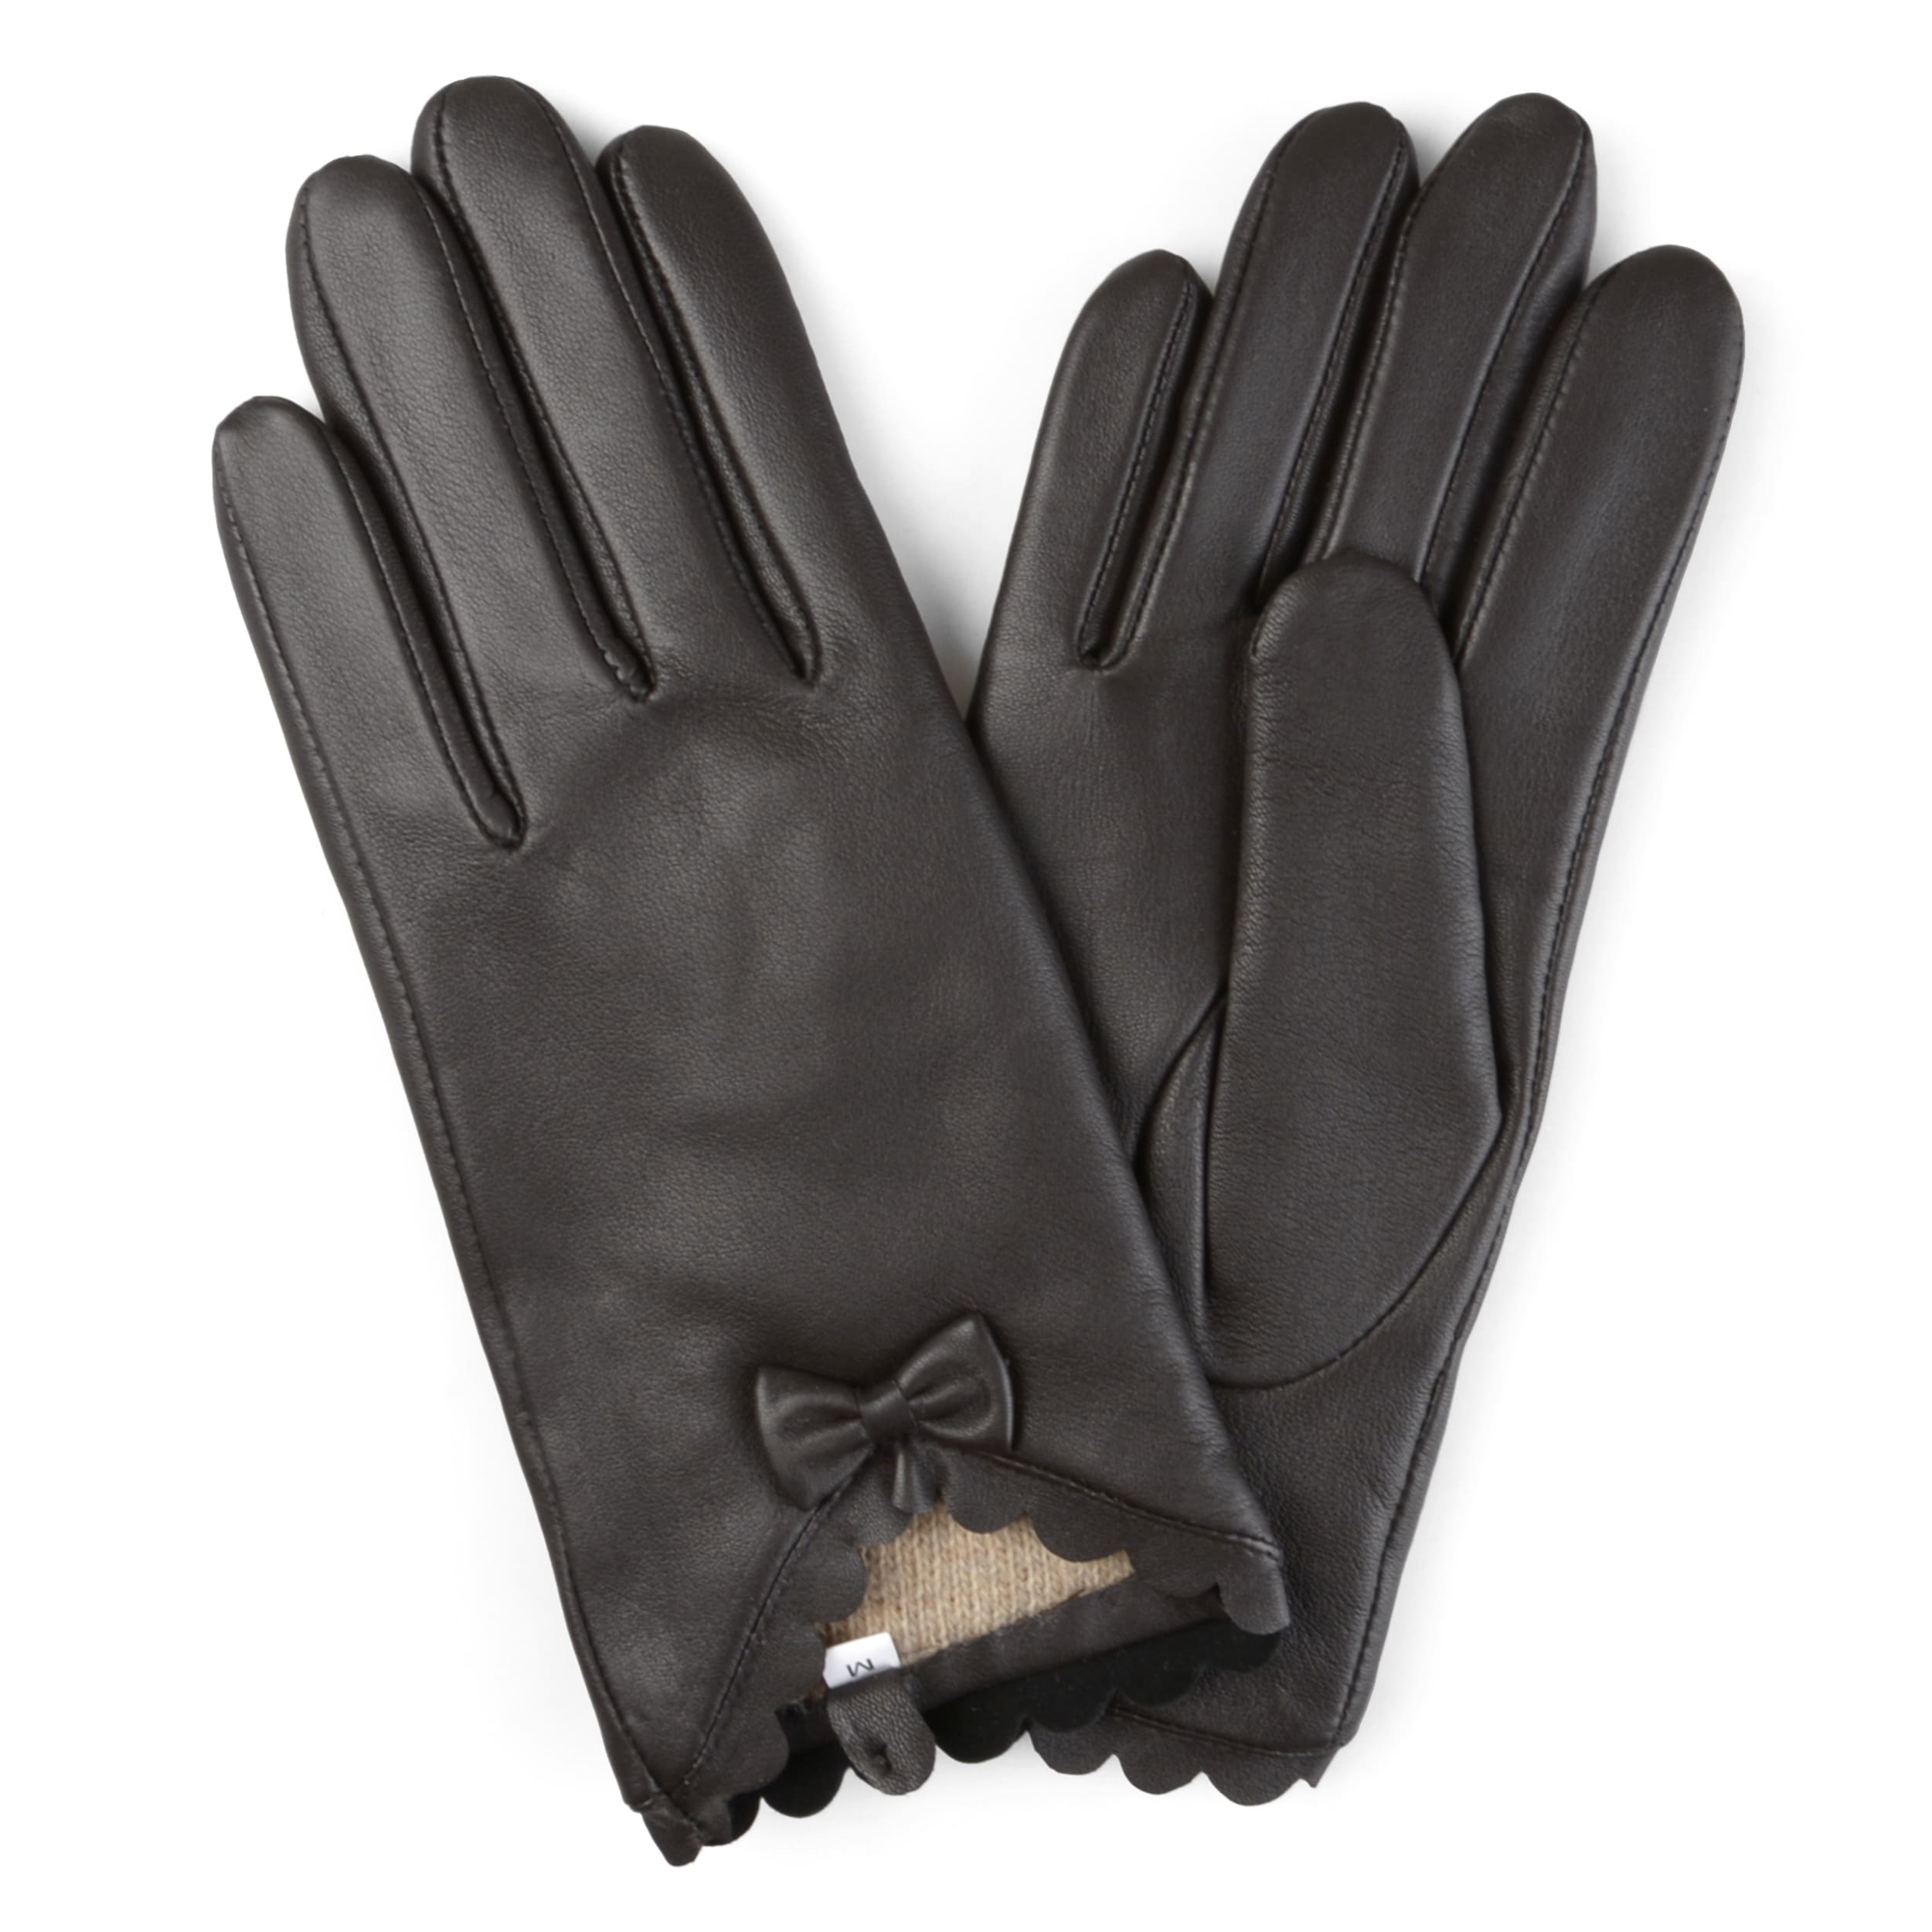 aa91d1c23 Shop Journee Collection Women's Wool Lined Leather Sheepskin Gloves - Free  Shipping On Orders Over $45 - Overstock - 12182041